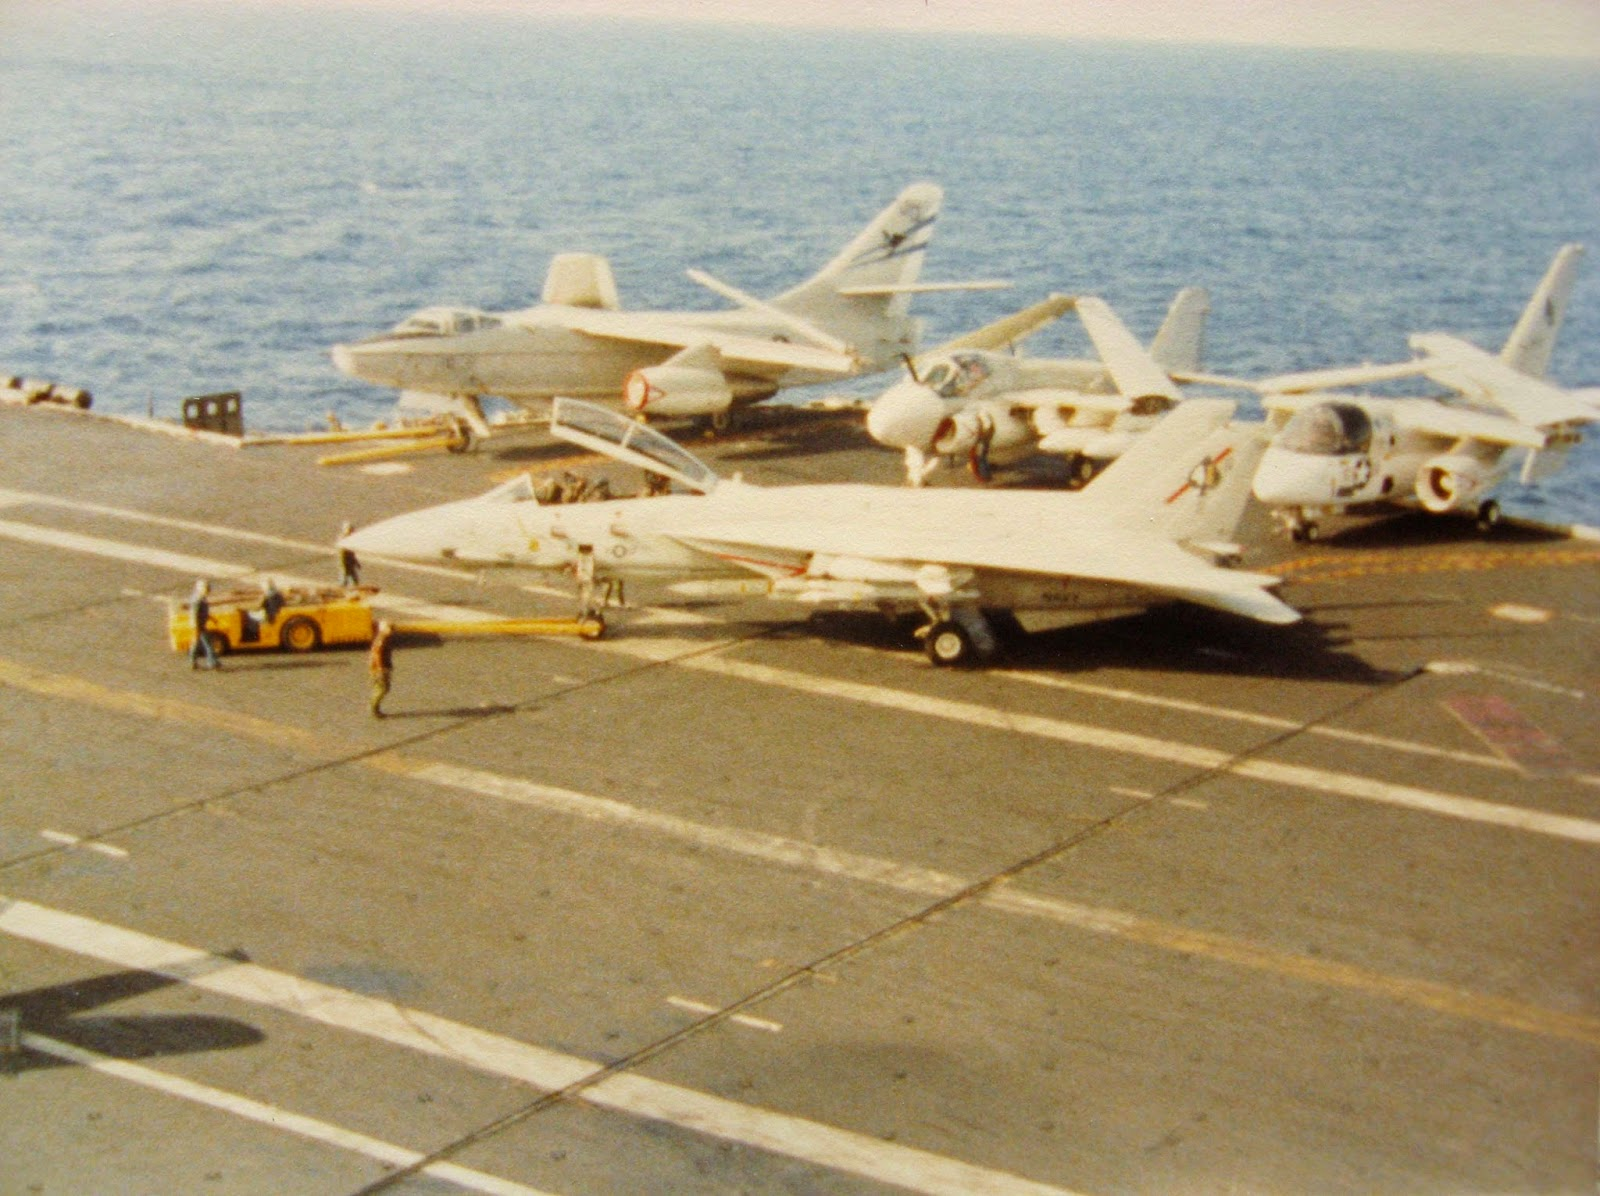 I snapped this from the Crow's Nest after flight ops January 1983